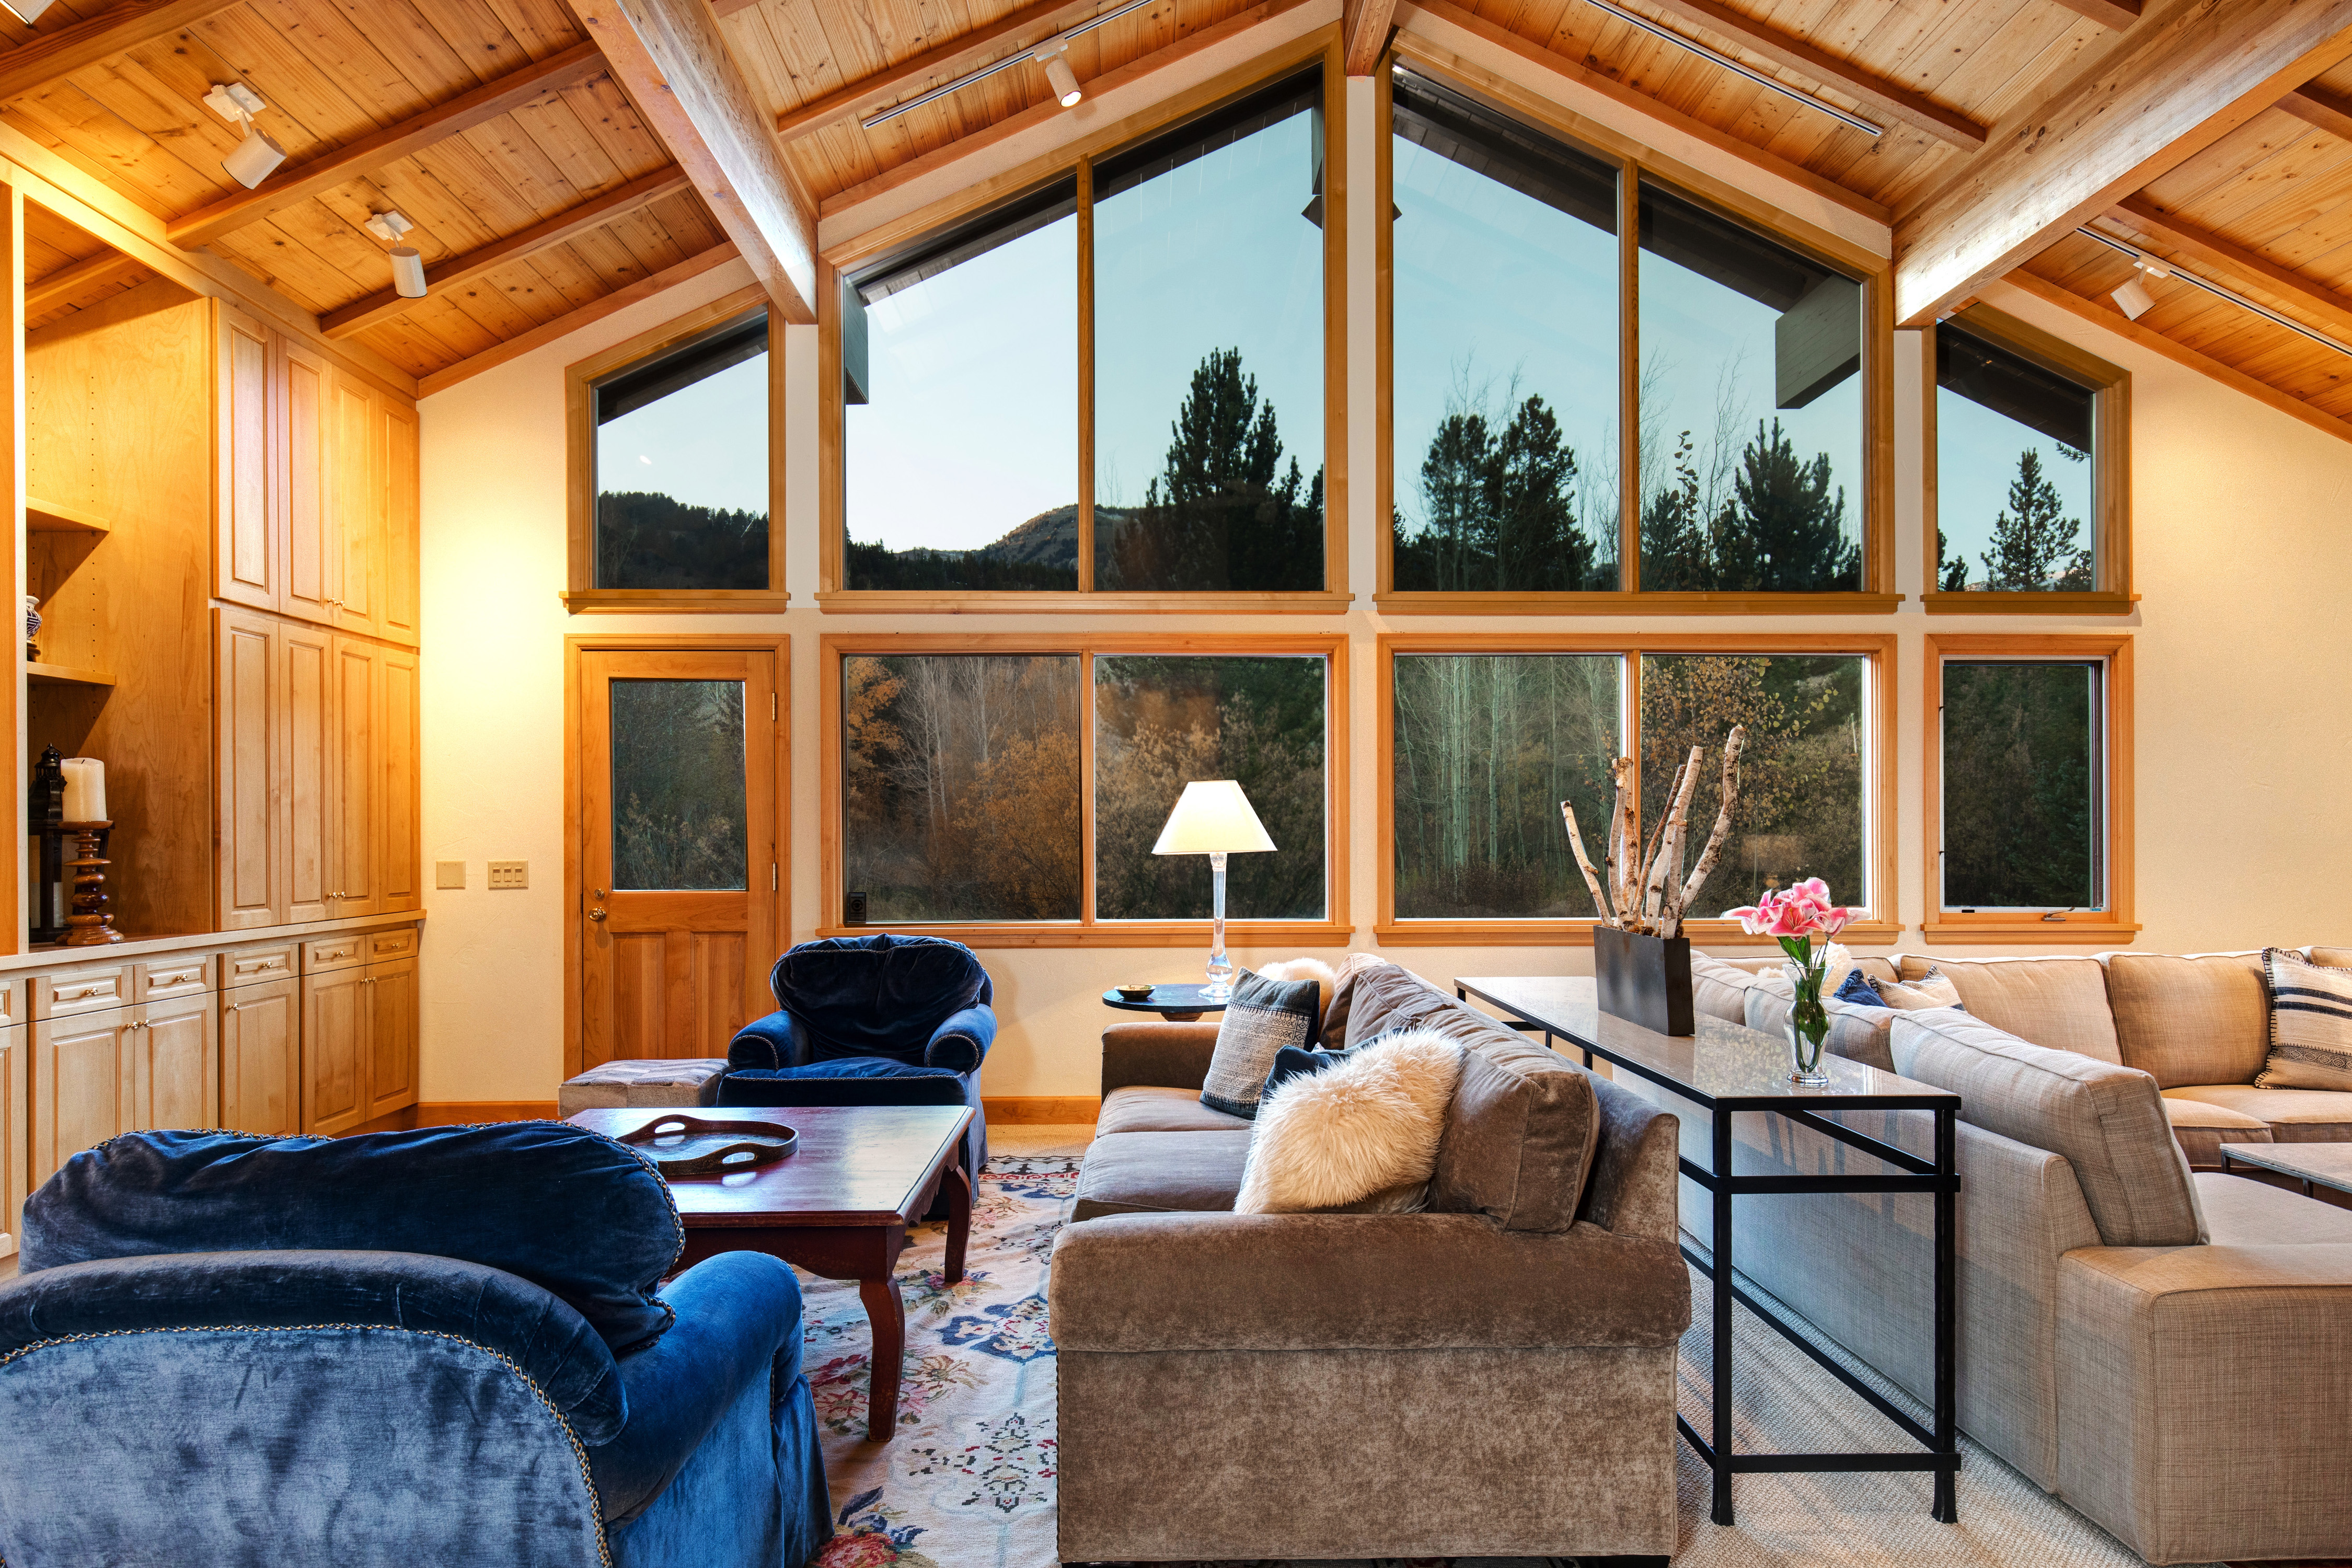 Abode Luxury Vacation Rentals  Jackson Hole Teton Garden Interior Living Room 2.7